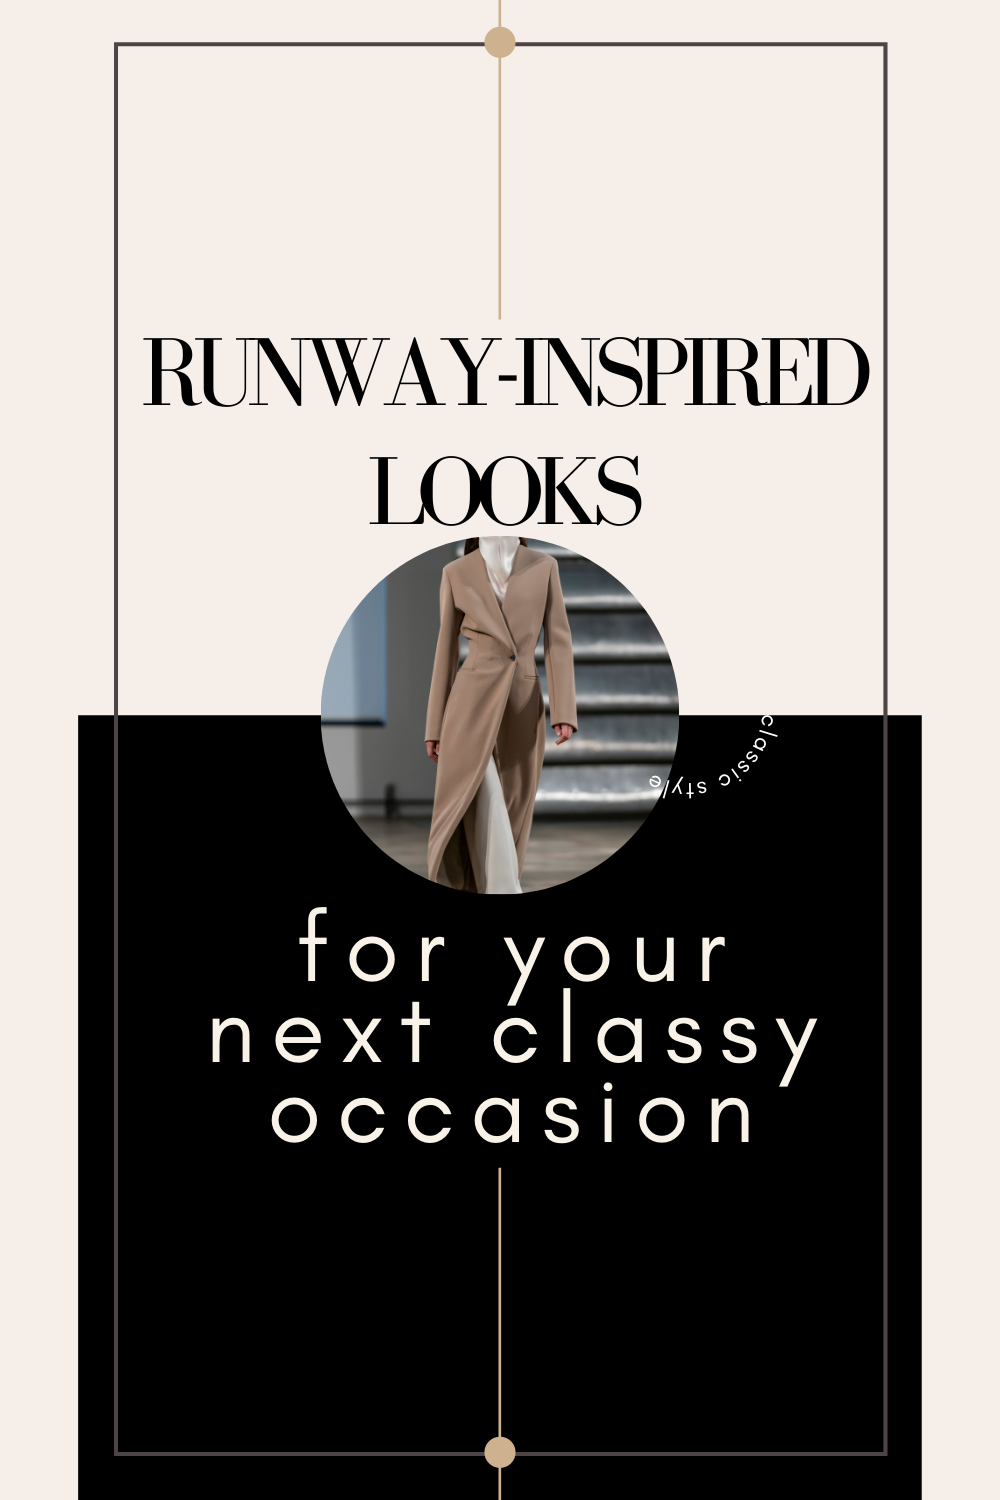 runway inspired classy occasion outfits